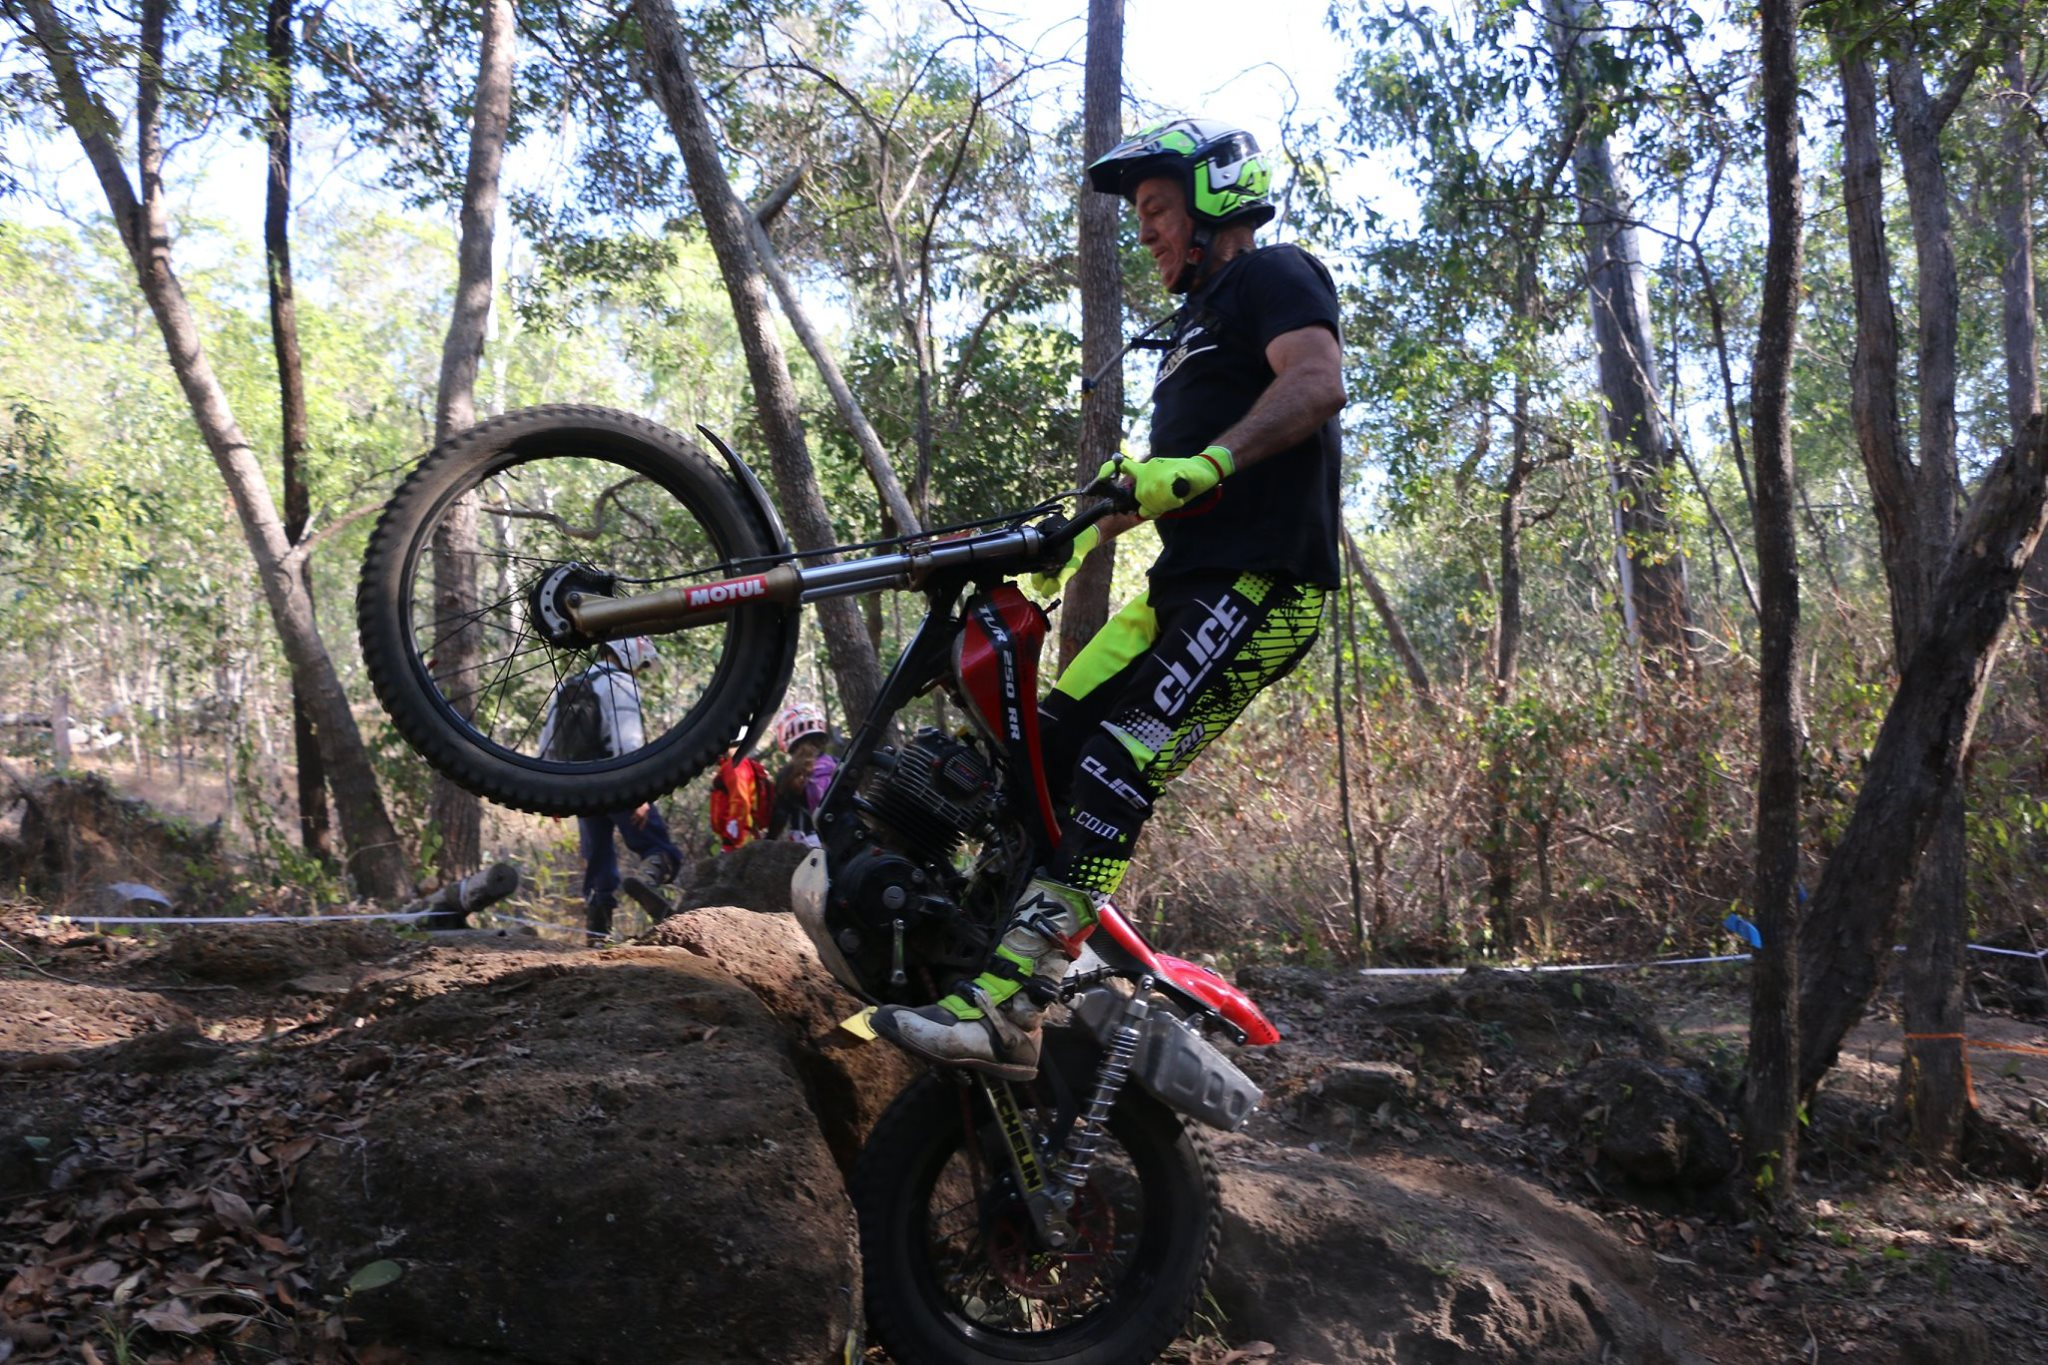 2020 AMA QLD Twin-Shock, Classic and Air Cooled Mono Trials Championship